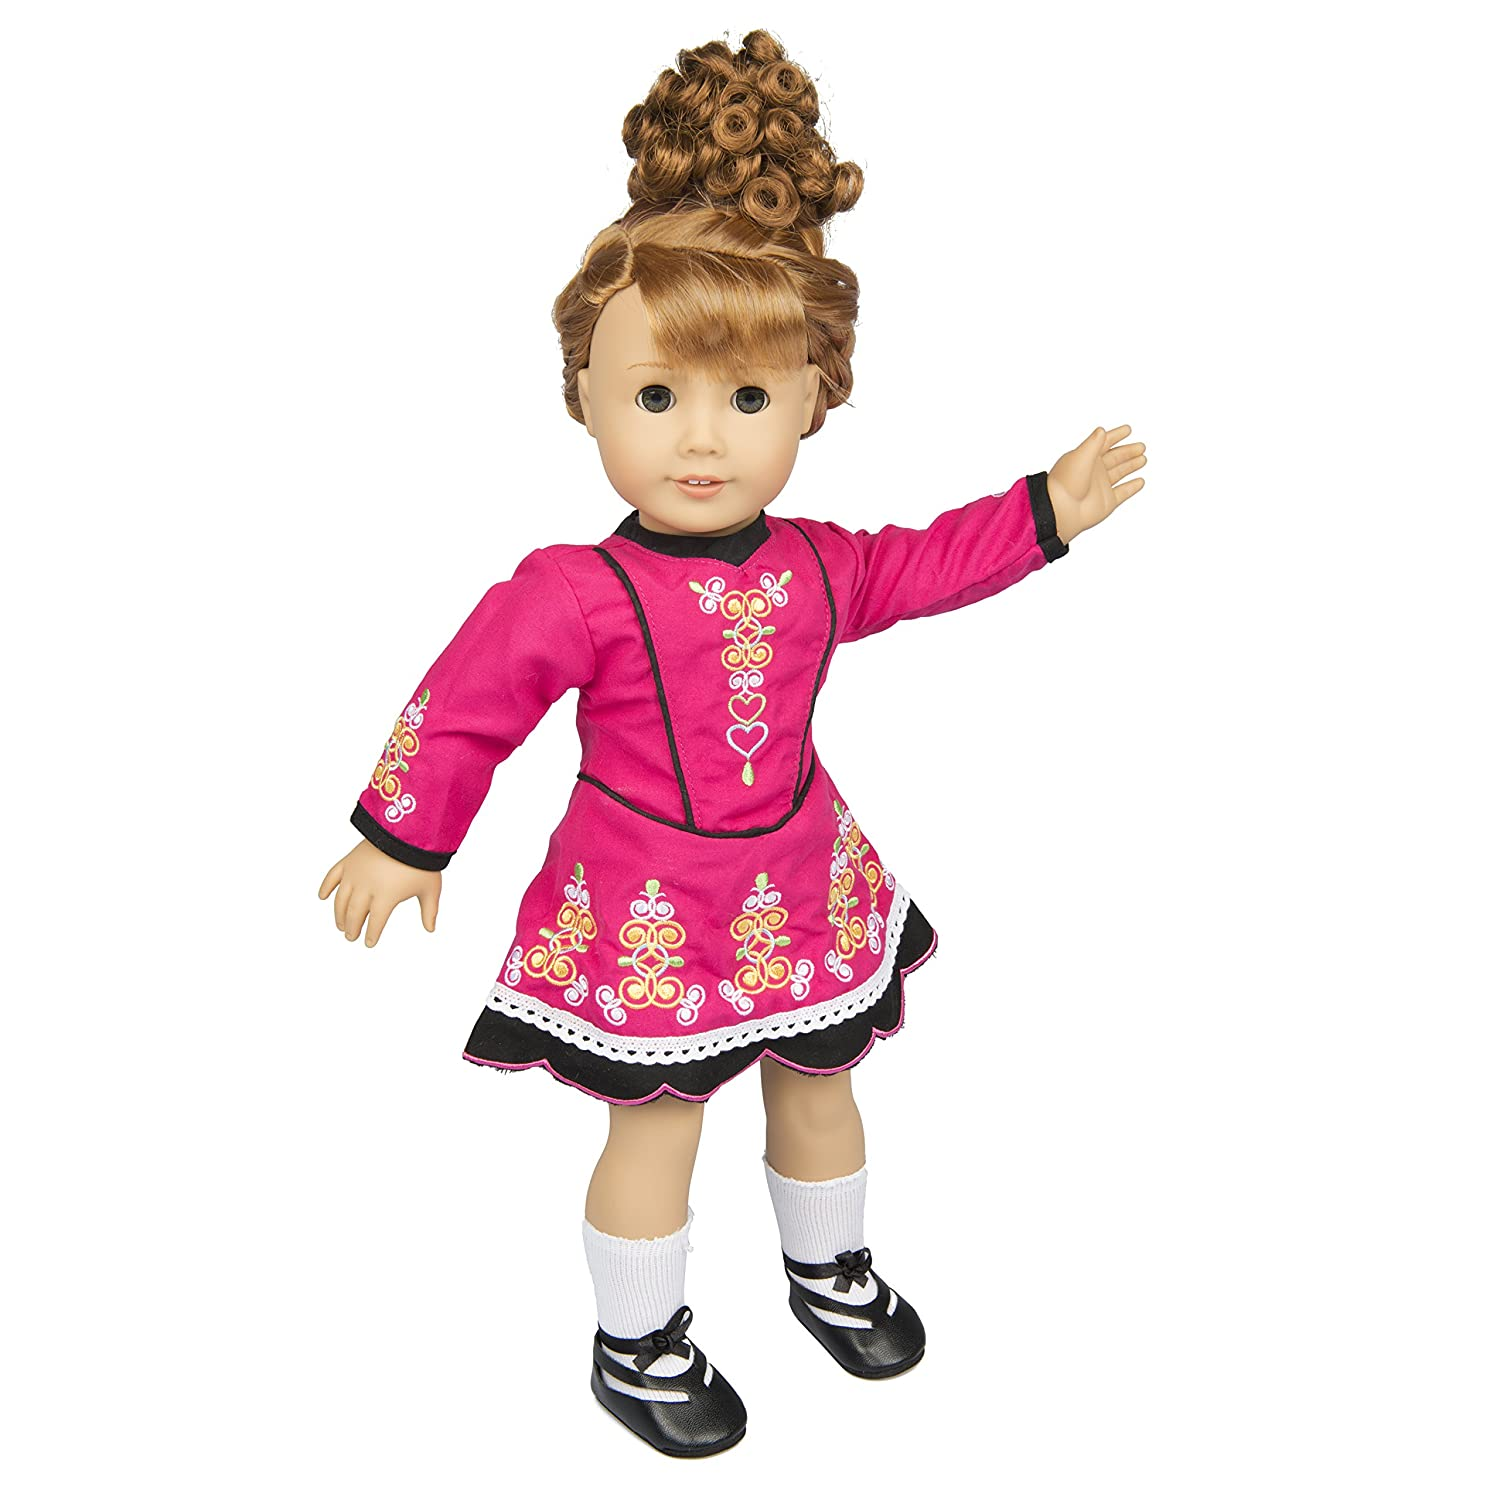 Irish Step Dancing Doll Clothes for 18' Dolls (Includes Dress, Brunette Hair, Gillies, and Leggings)